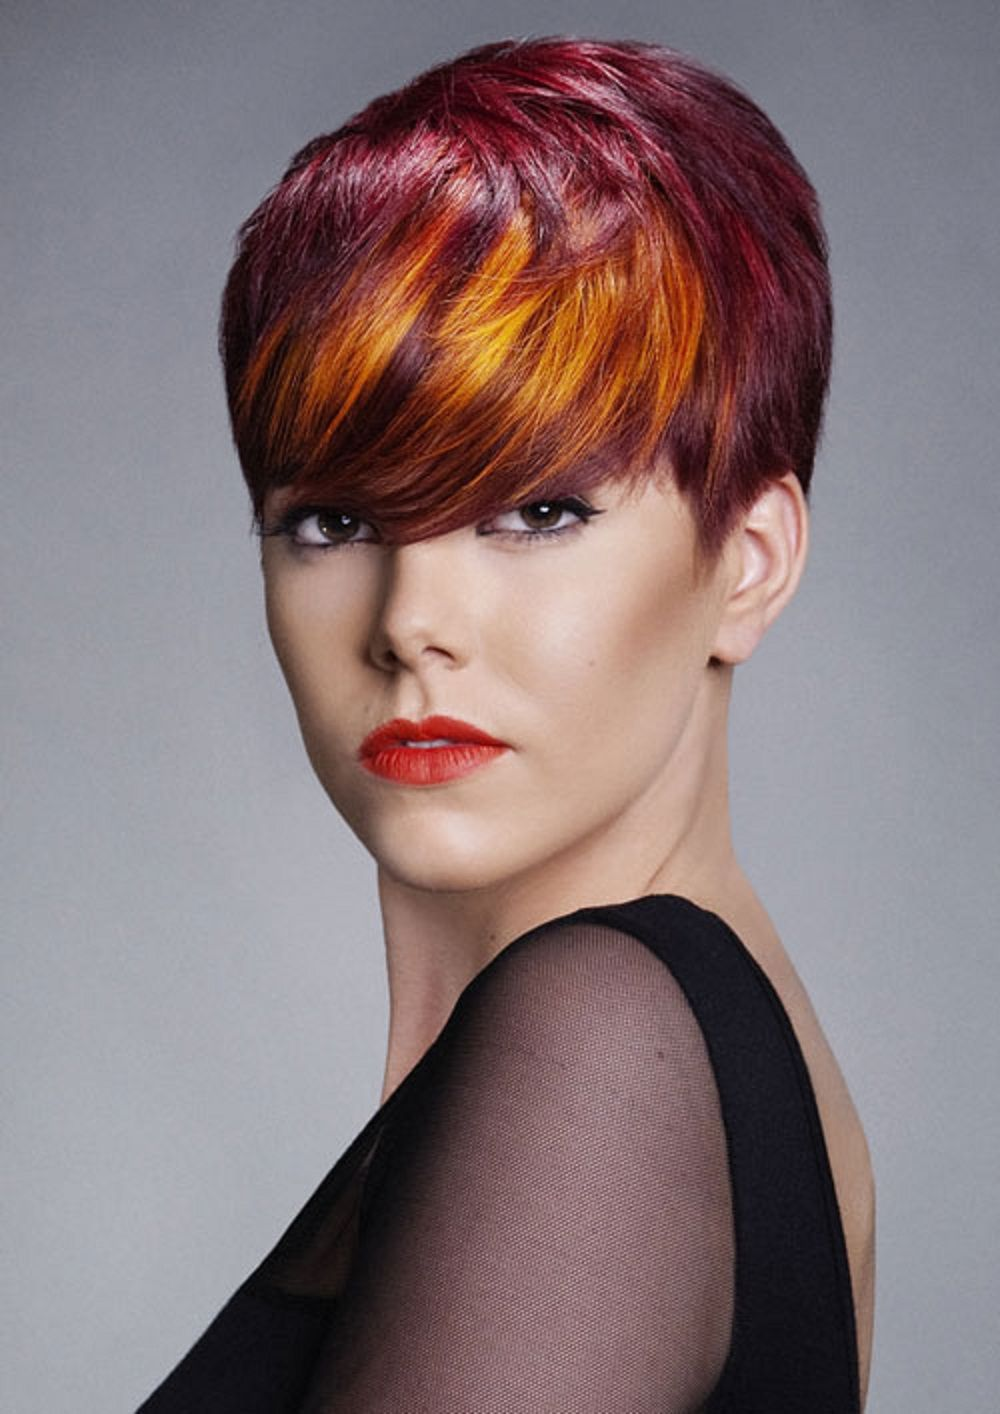 Red hair color for short hair ℋairstyles coiffure